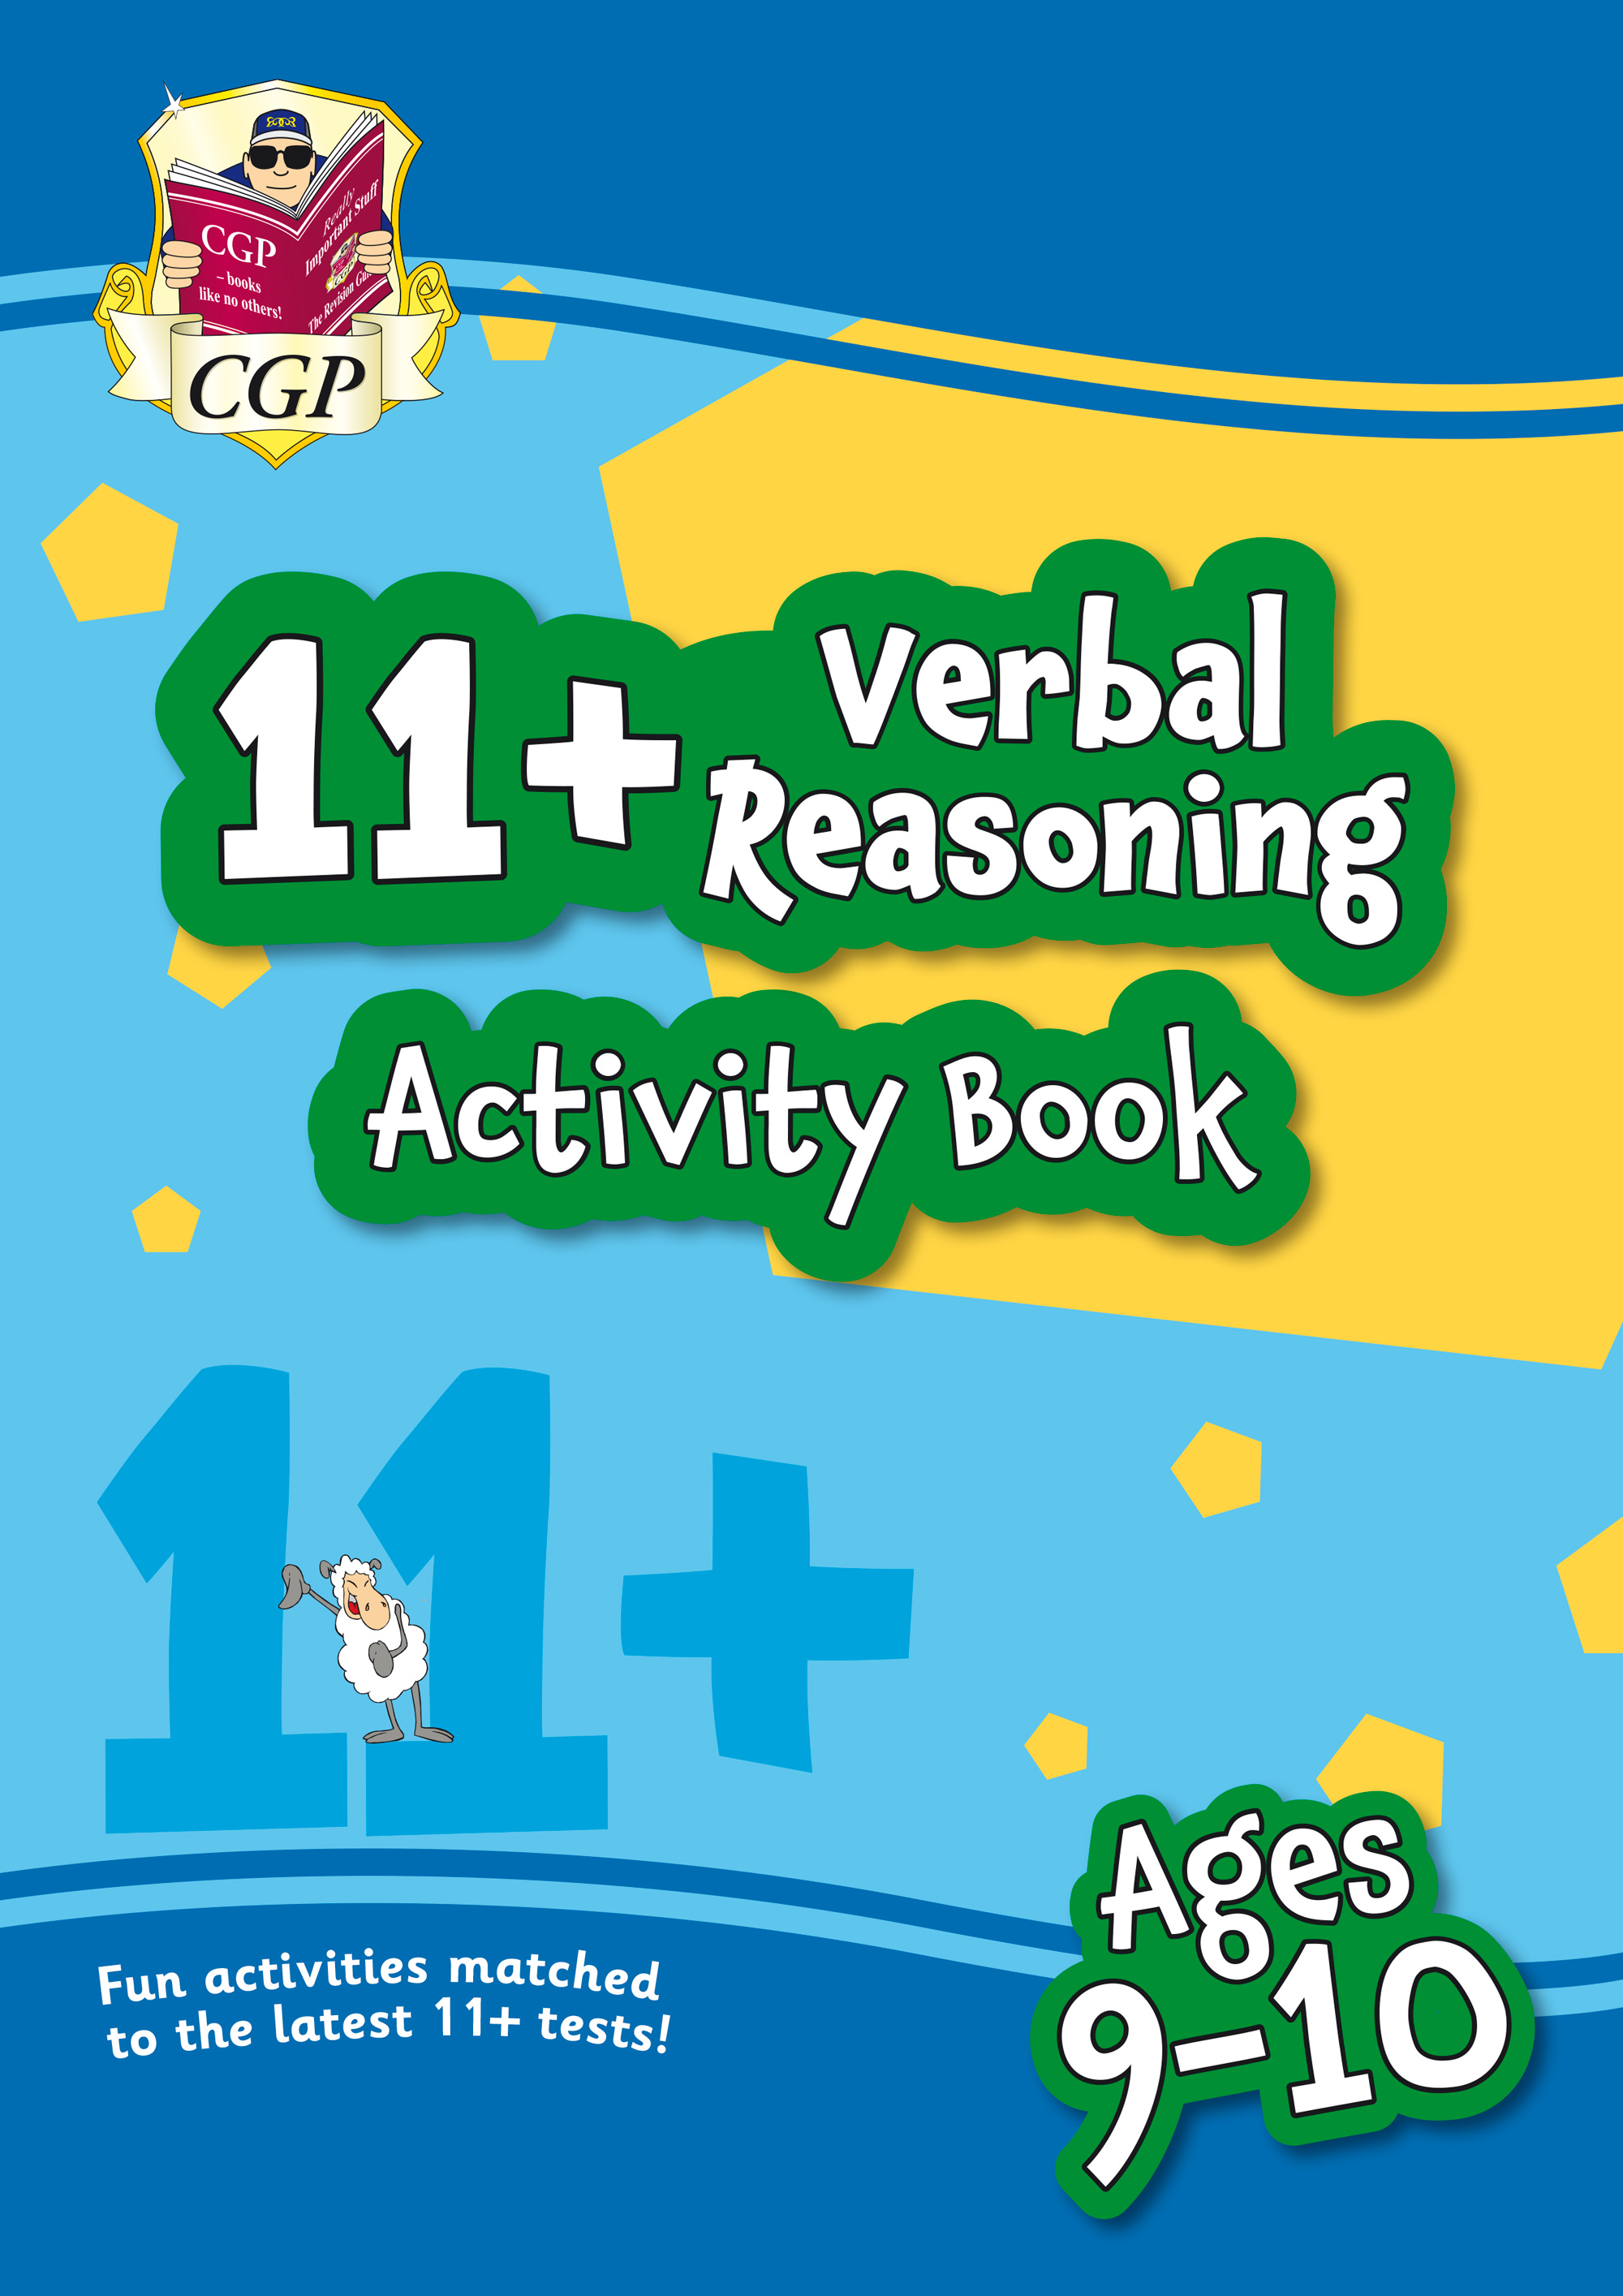 VF5QE1 - New 11+ Activity Book: Verbal Reasoning - Ages 9-10